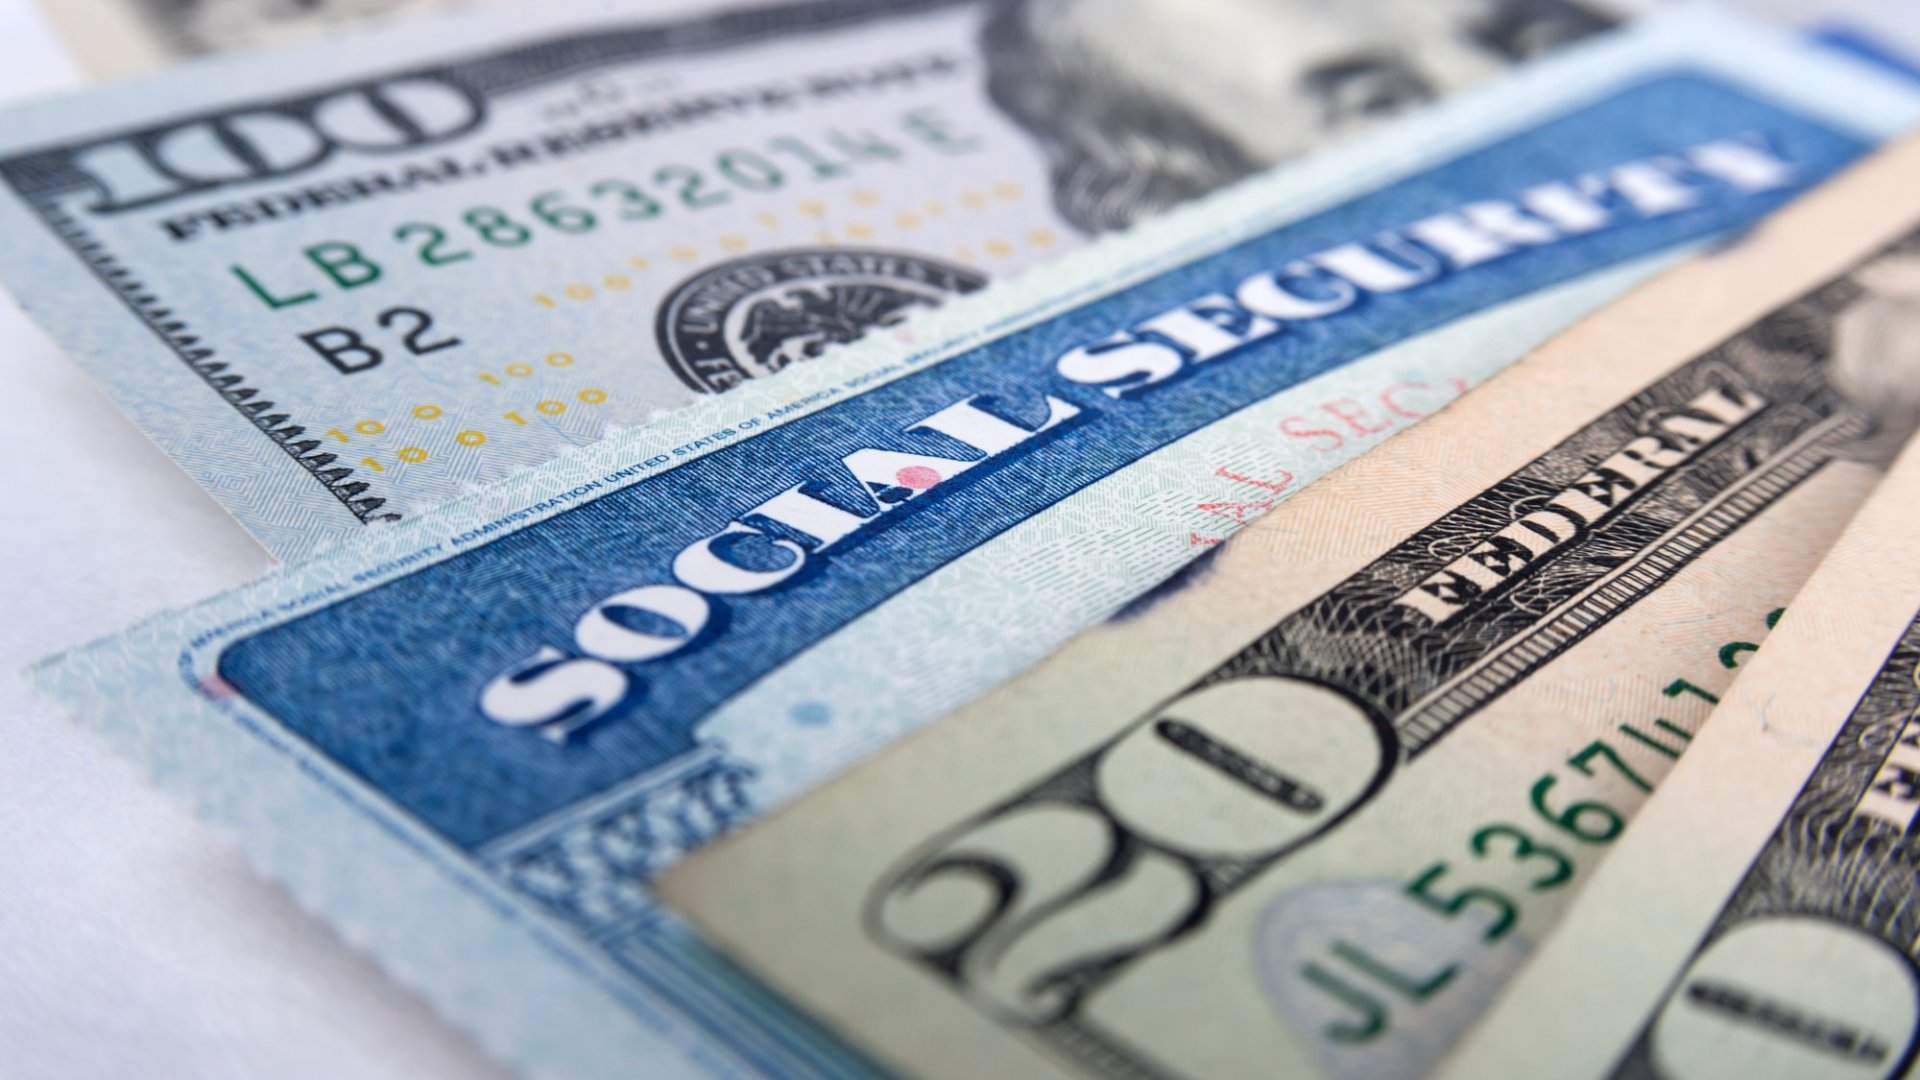 In Just 90 Seconds, This Government Website Shows You How Much Money to Expect From Social Security. (Millions of Americans Will Find a Very Big Surprise)